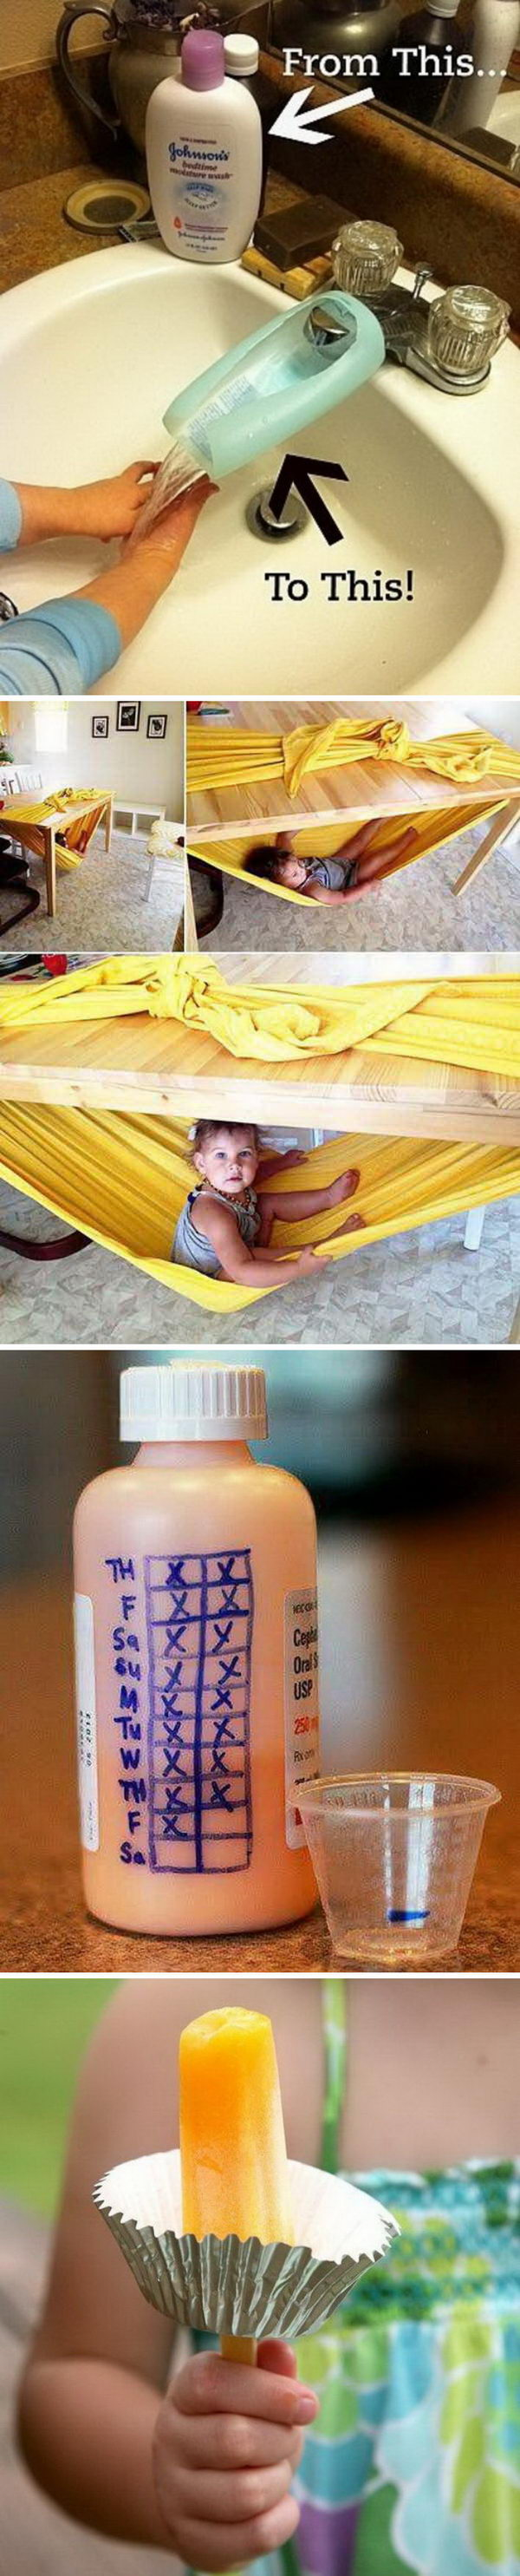 Practical Parenting Hacks For Kids.